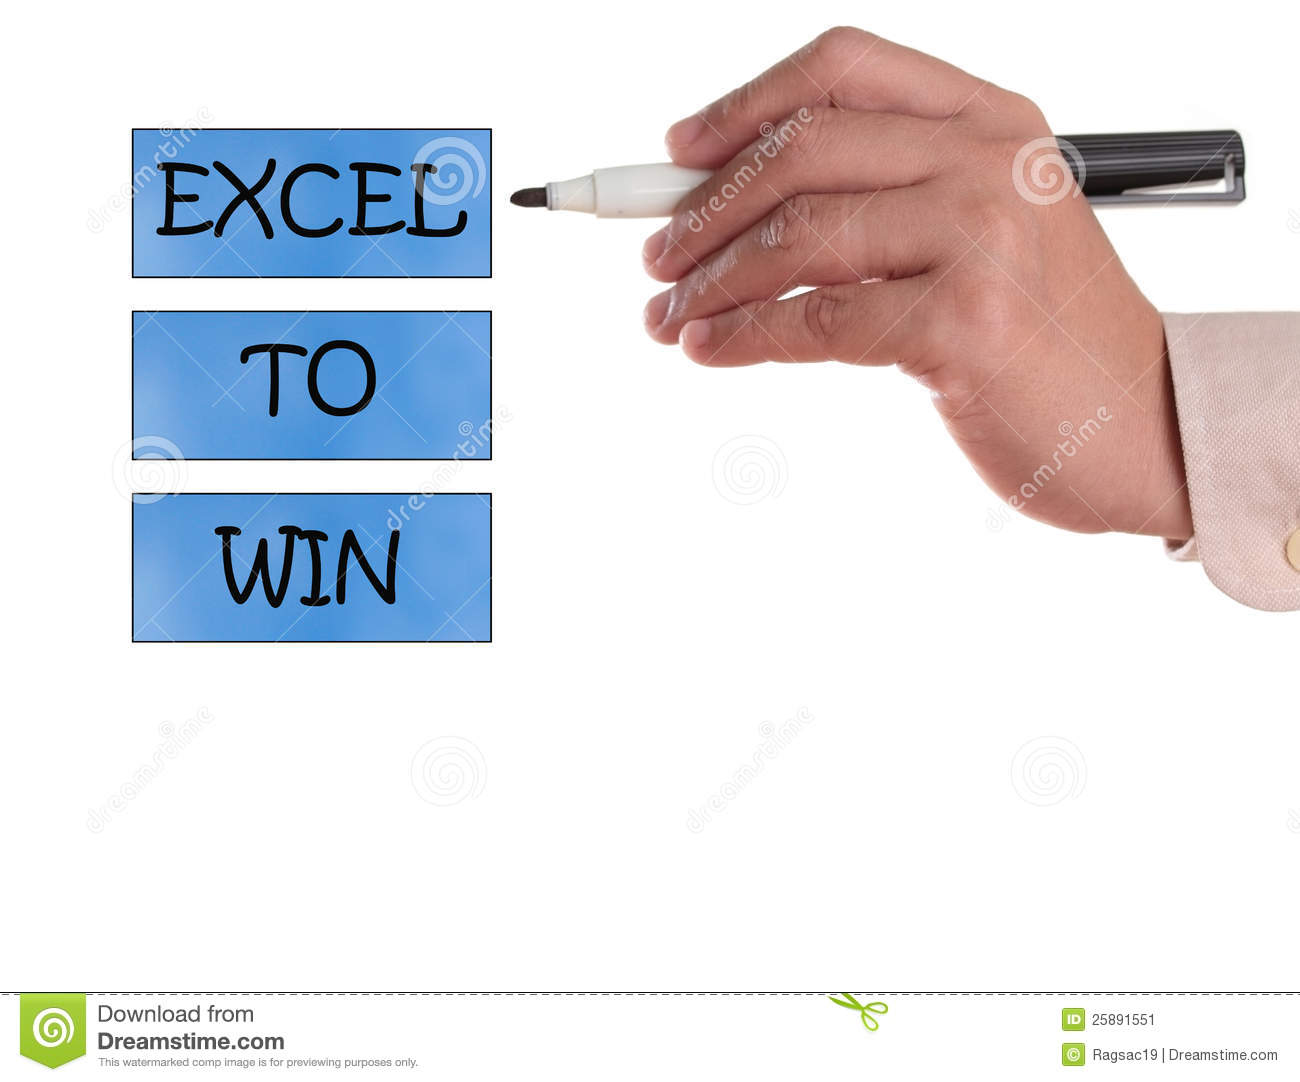 Excel to win